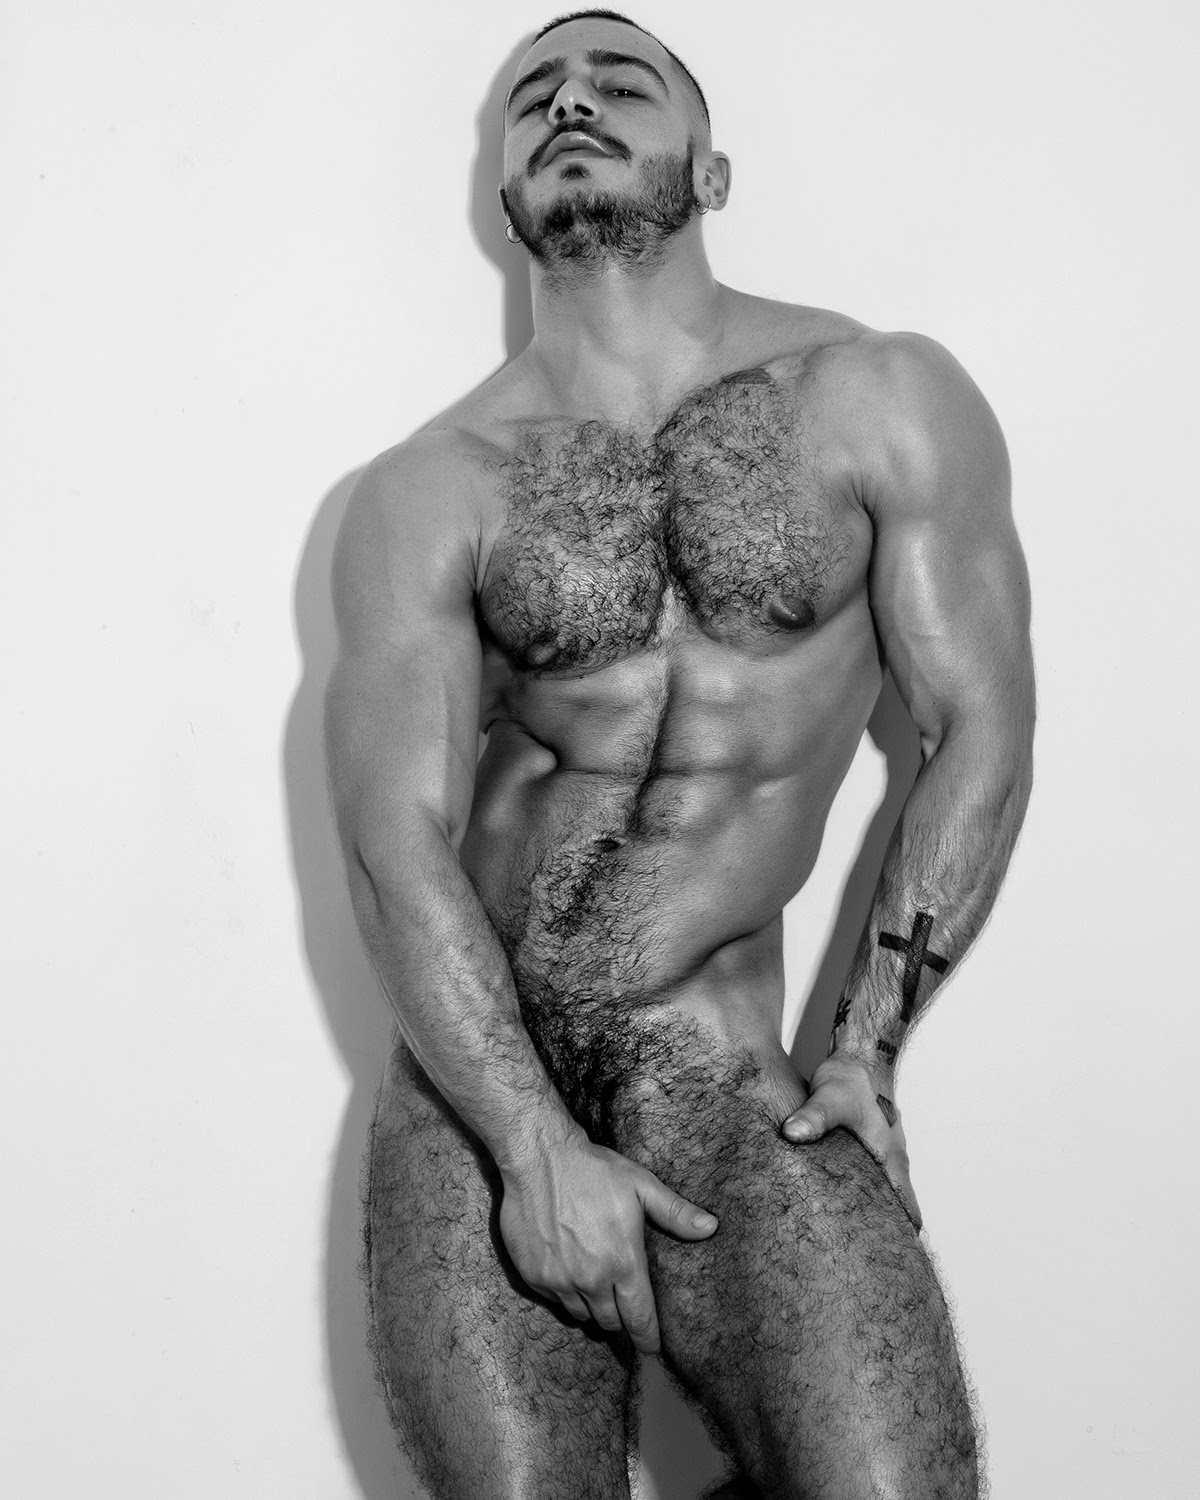 SimplY PaolO, by Joan Crisol ft Paolo Bellucci (NSFW)